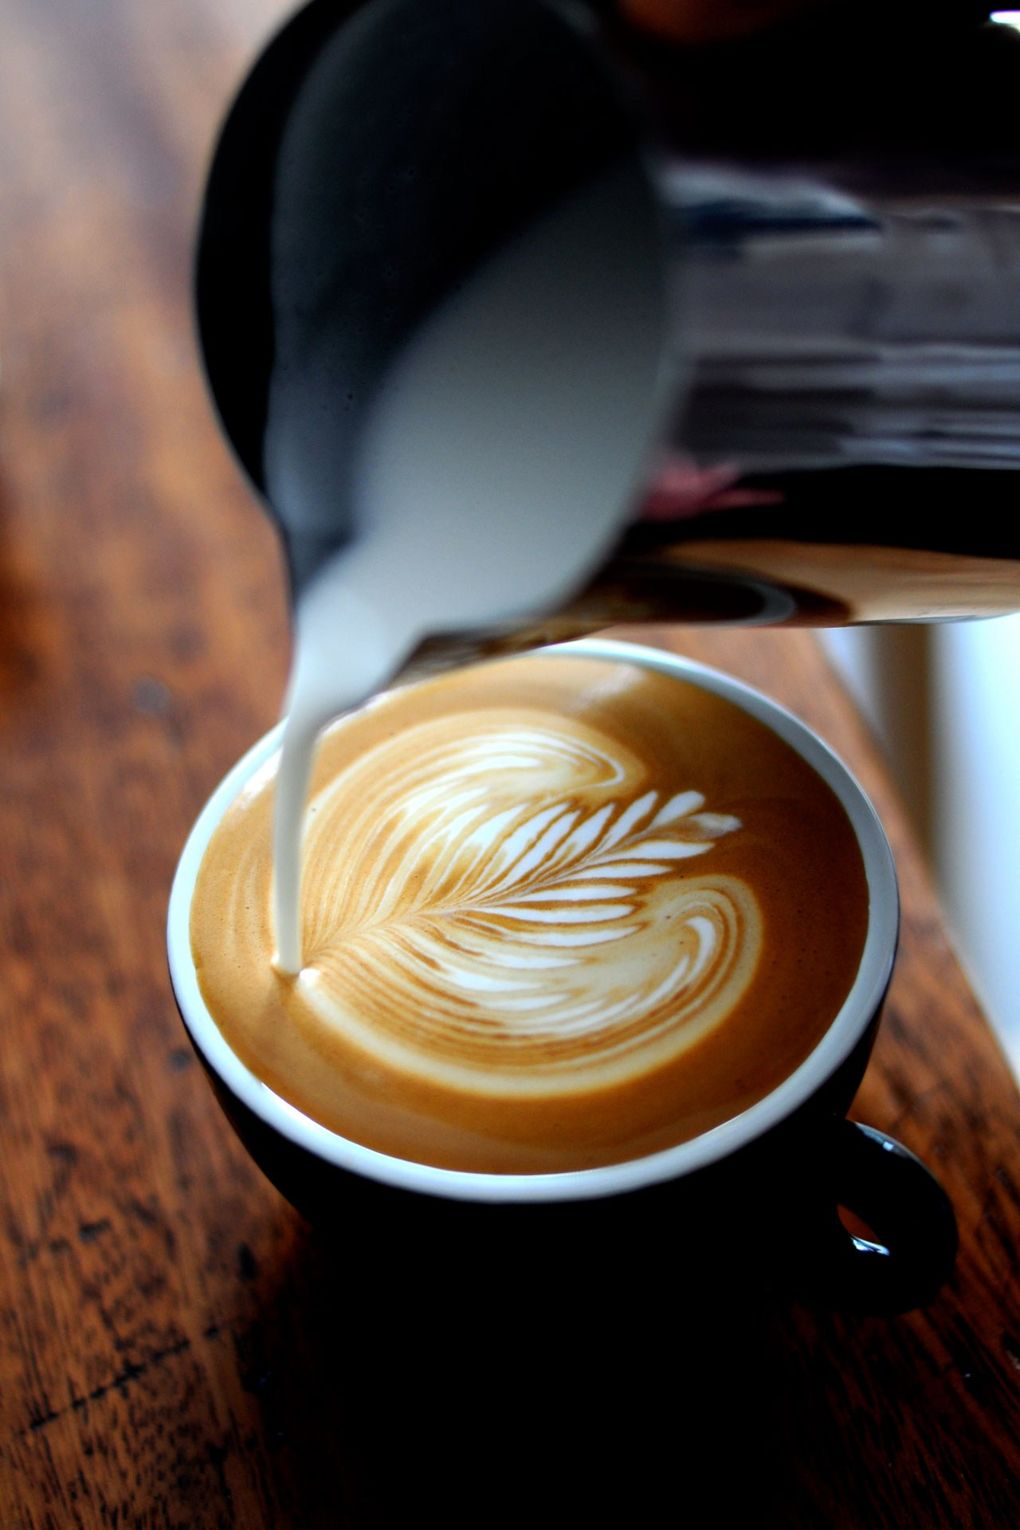 Where to seek out the best coffee in London: https://t.co/Avmau7oOHA https://t.co/dTzcnB62yH